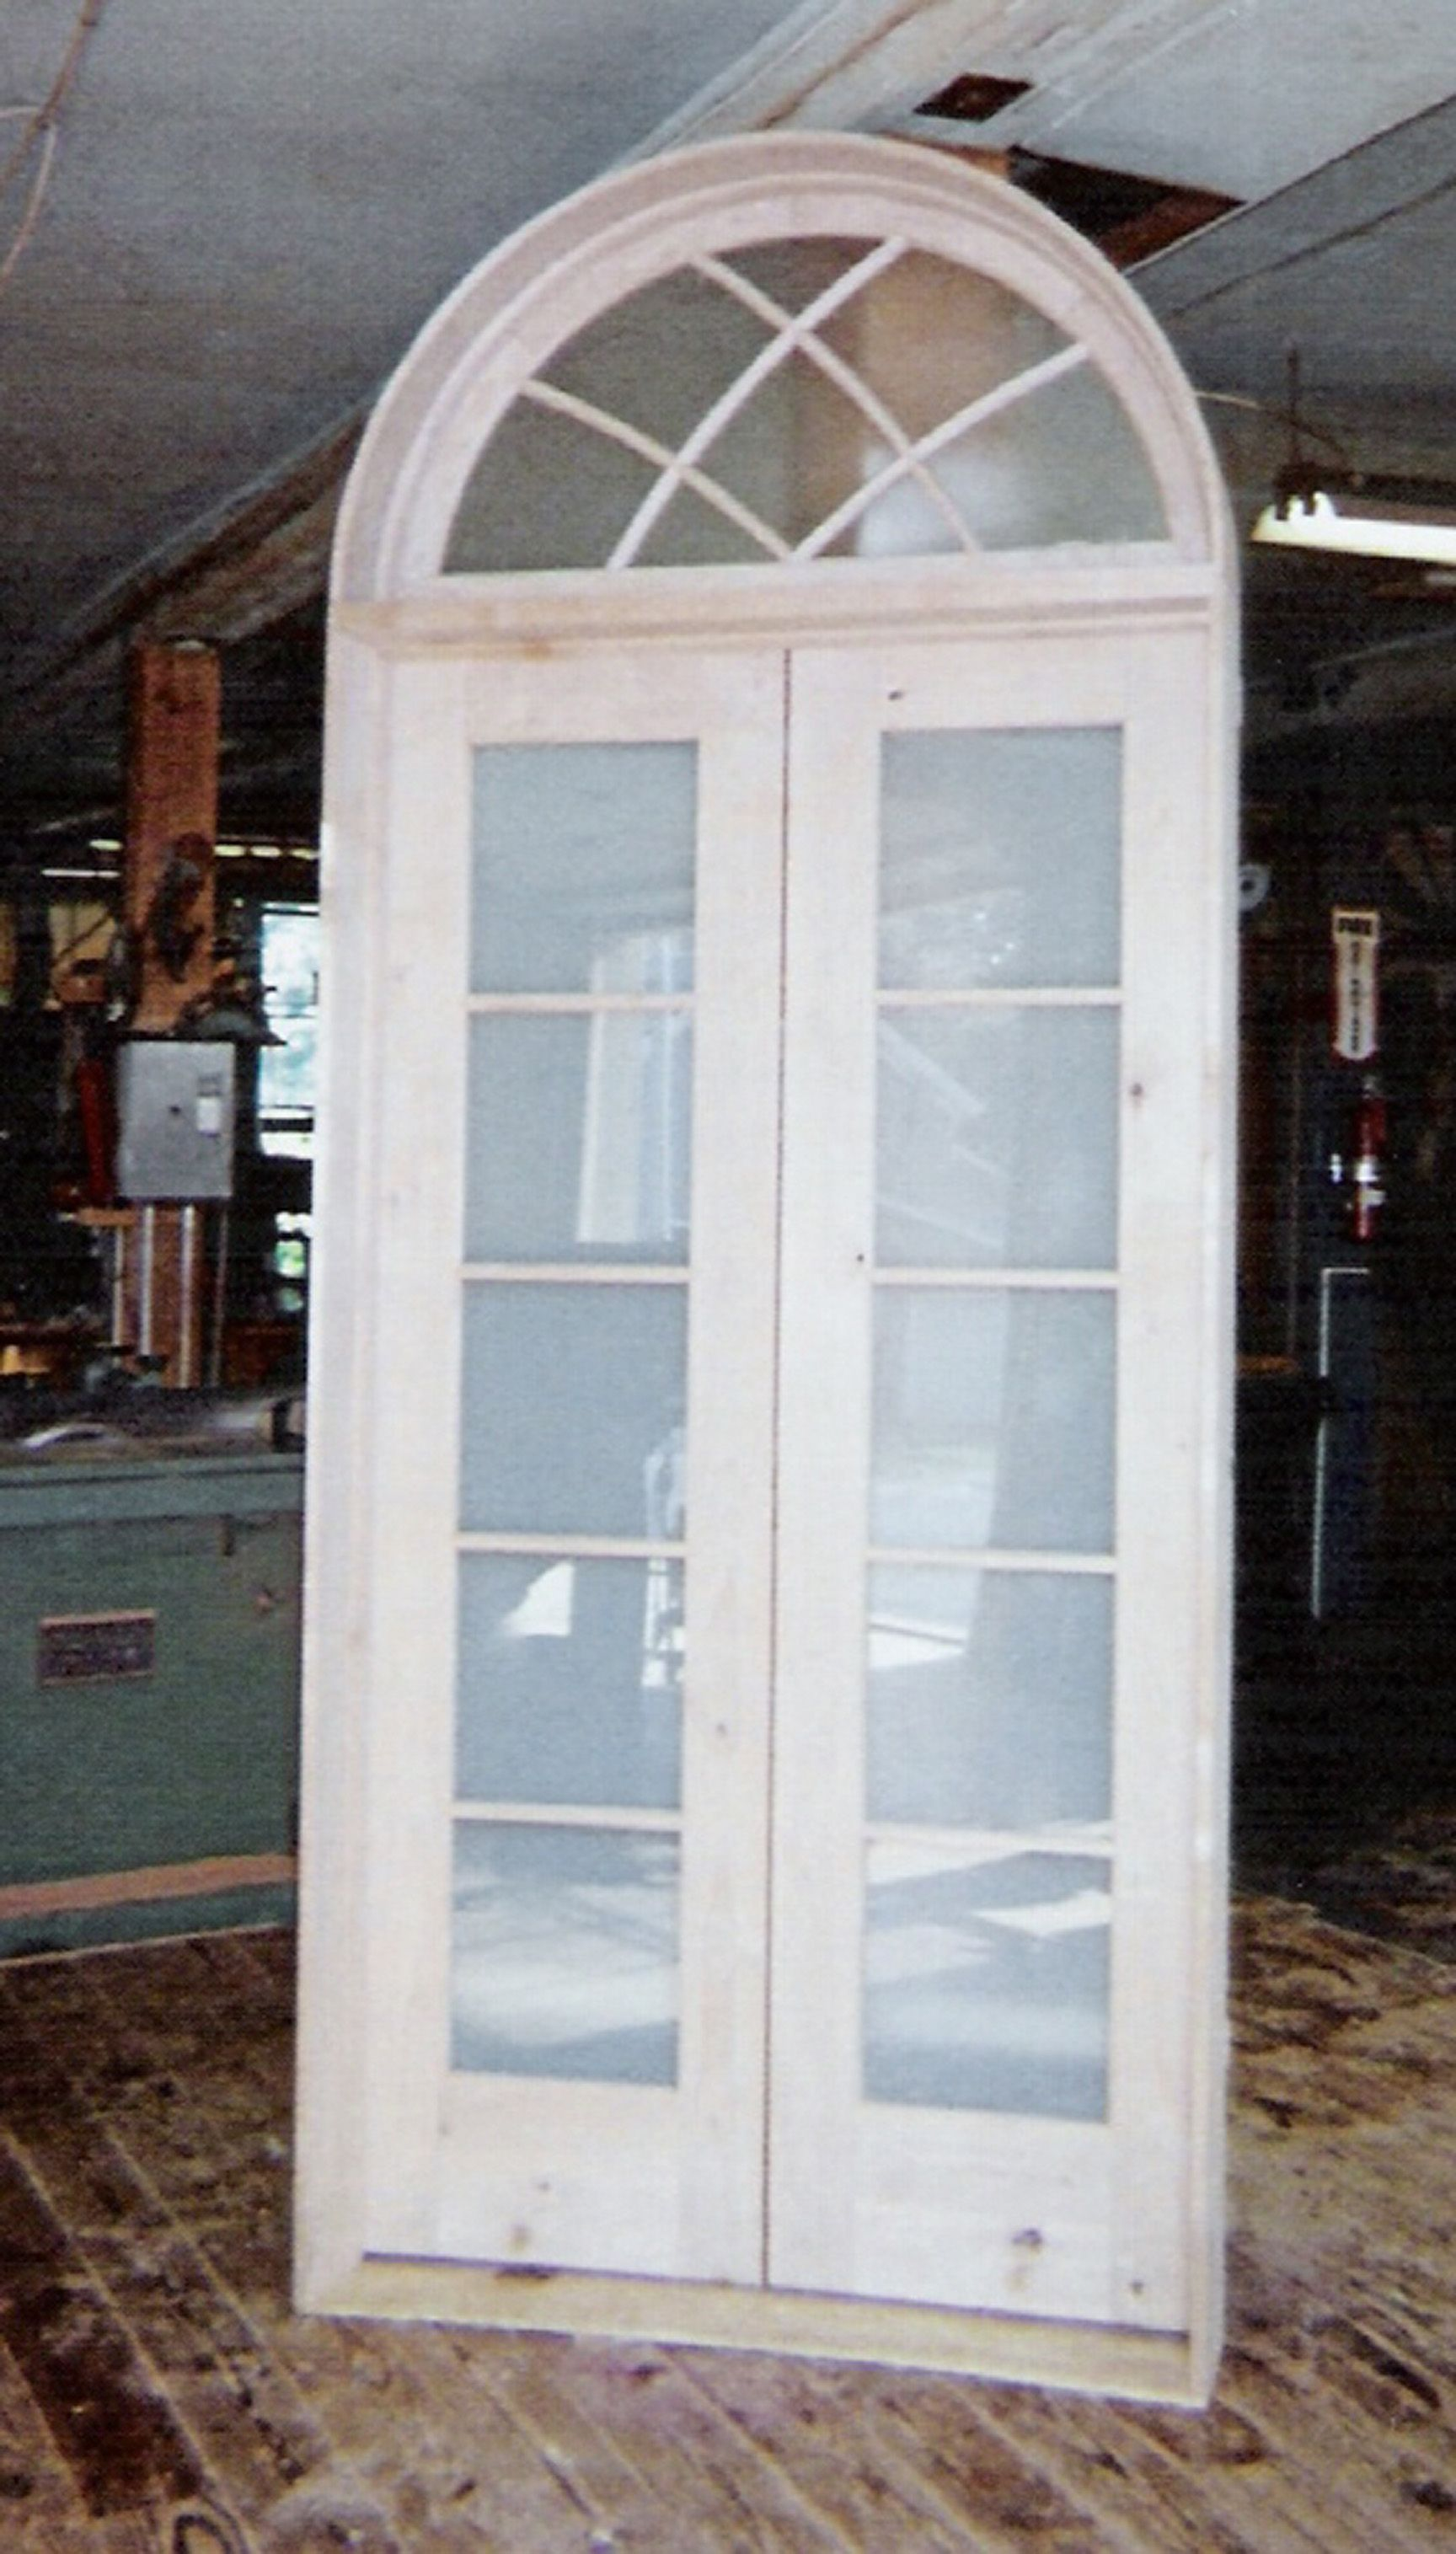 Arch Top Transom Window Gothic Mullion Interior Double French Door Unit Ob Secured Glass New